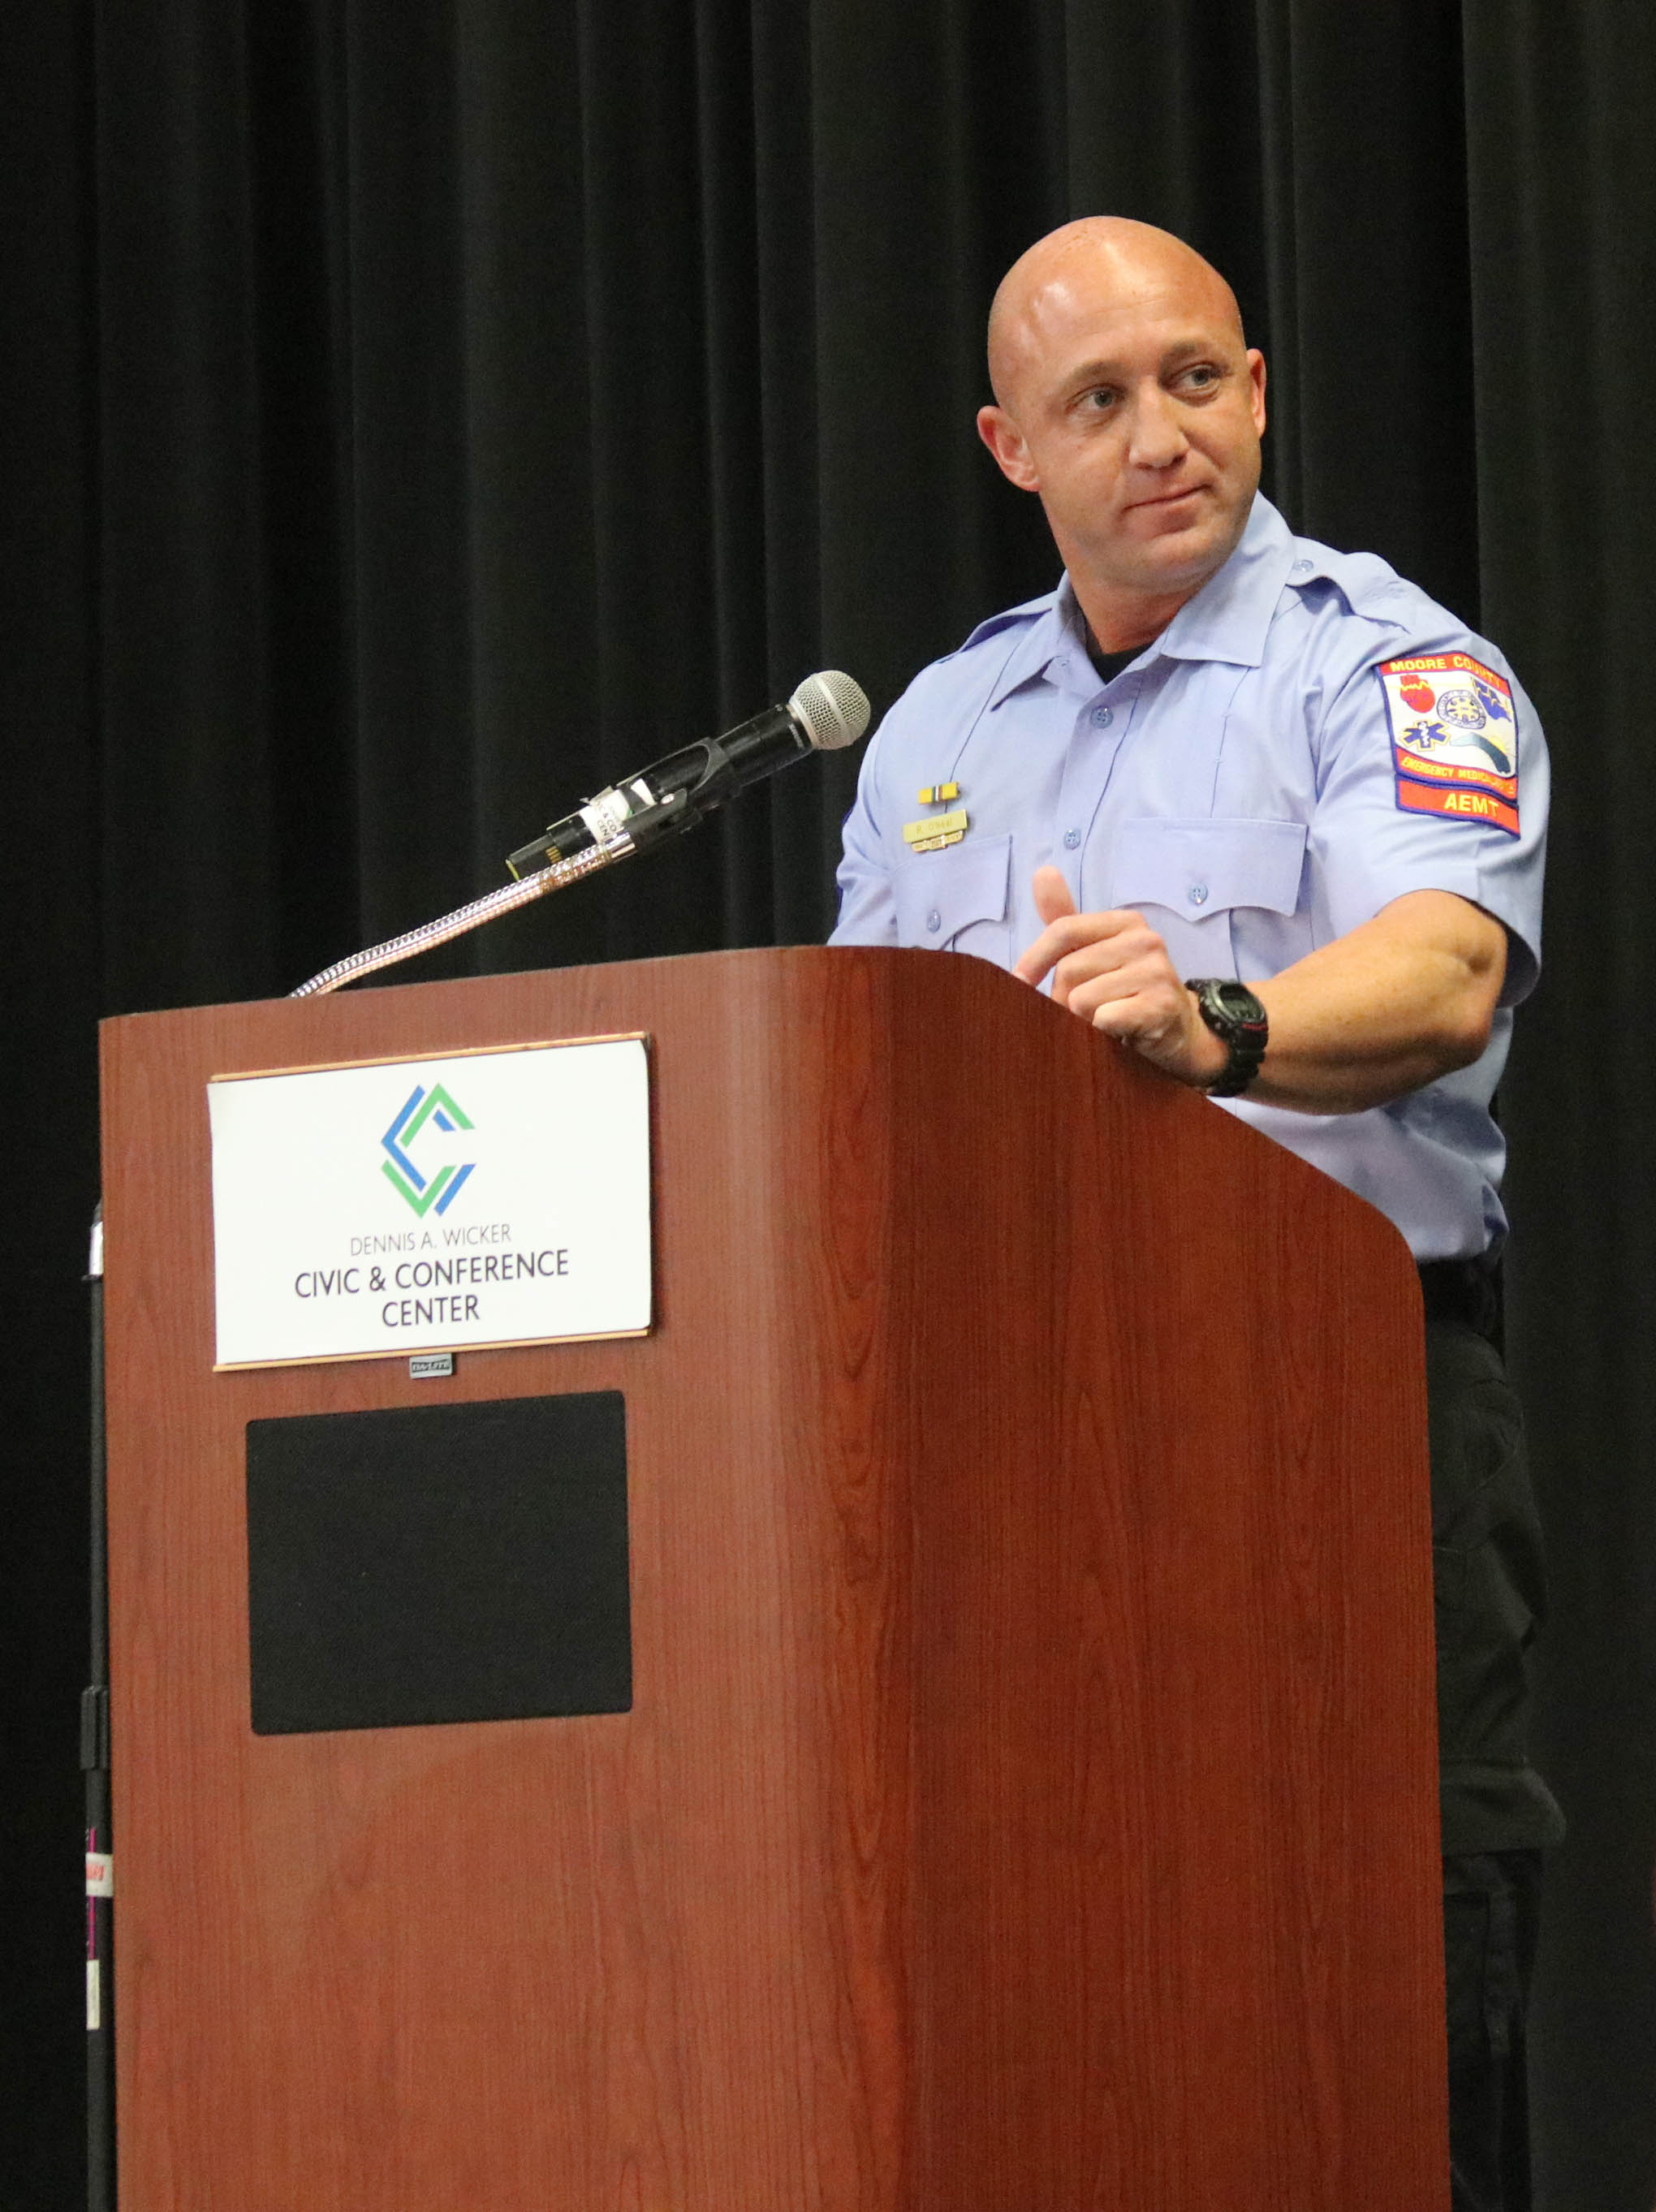 Click to enlarge,  Richard O'Neal was one of the student speakers at the Central Carolina Community College Continuing Education Medical Programs graduation. The event was held Dec. 12 at the Dennis A. Wicker Civic & Conference Center in Sanford.